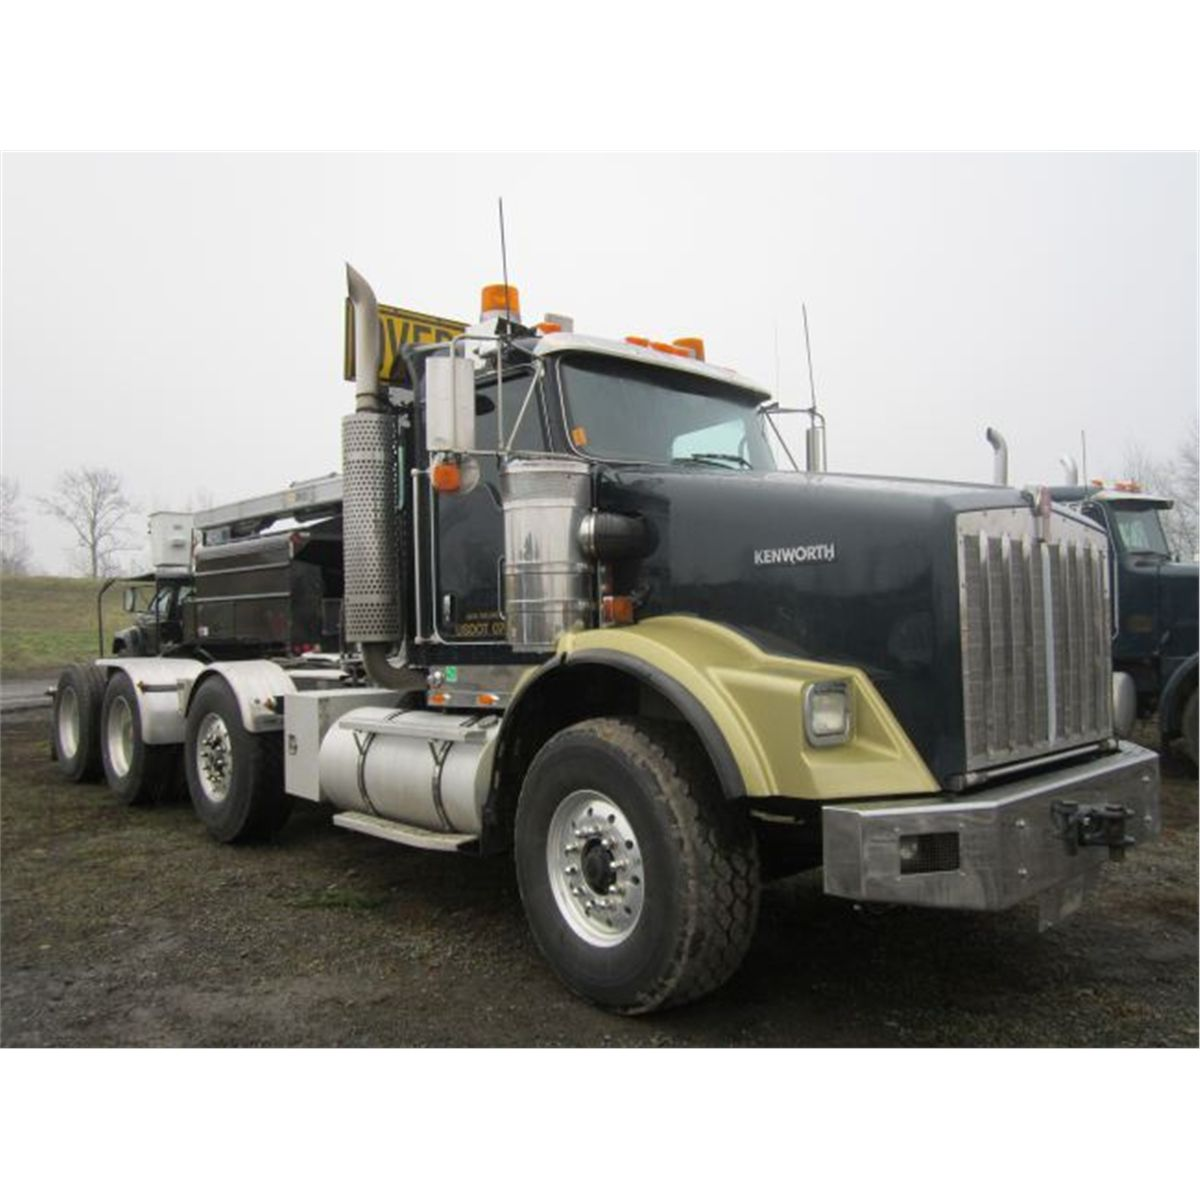 hight resolution of  image 4 2007 kenworth t800 heavy haul truck tractor